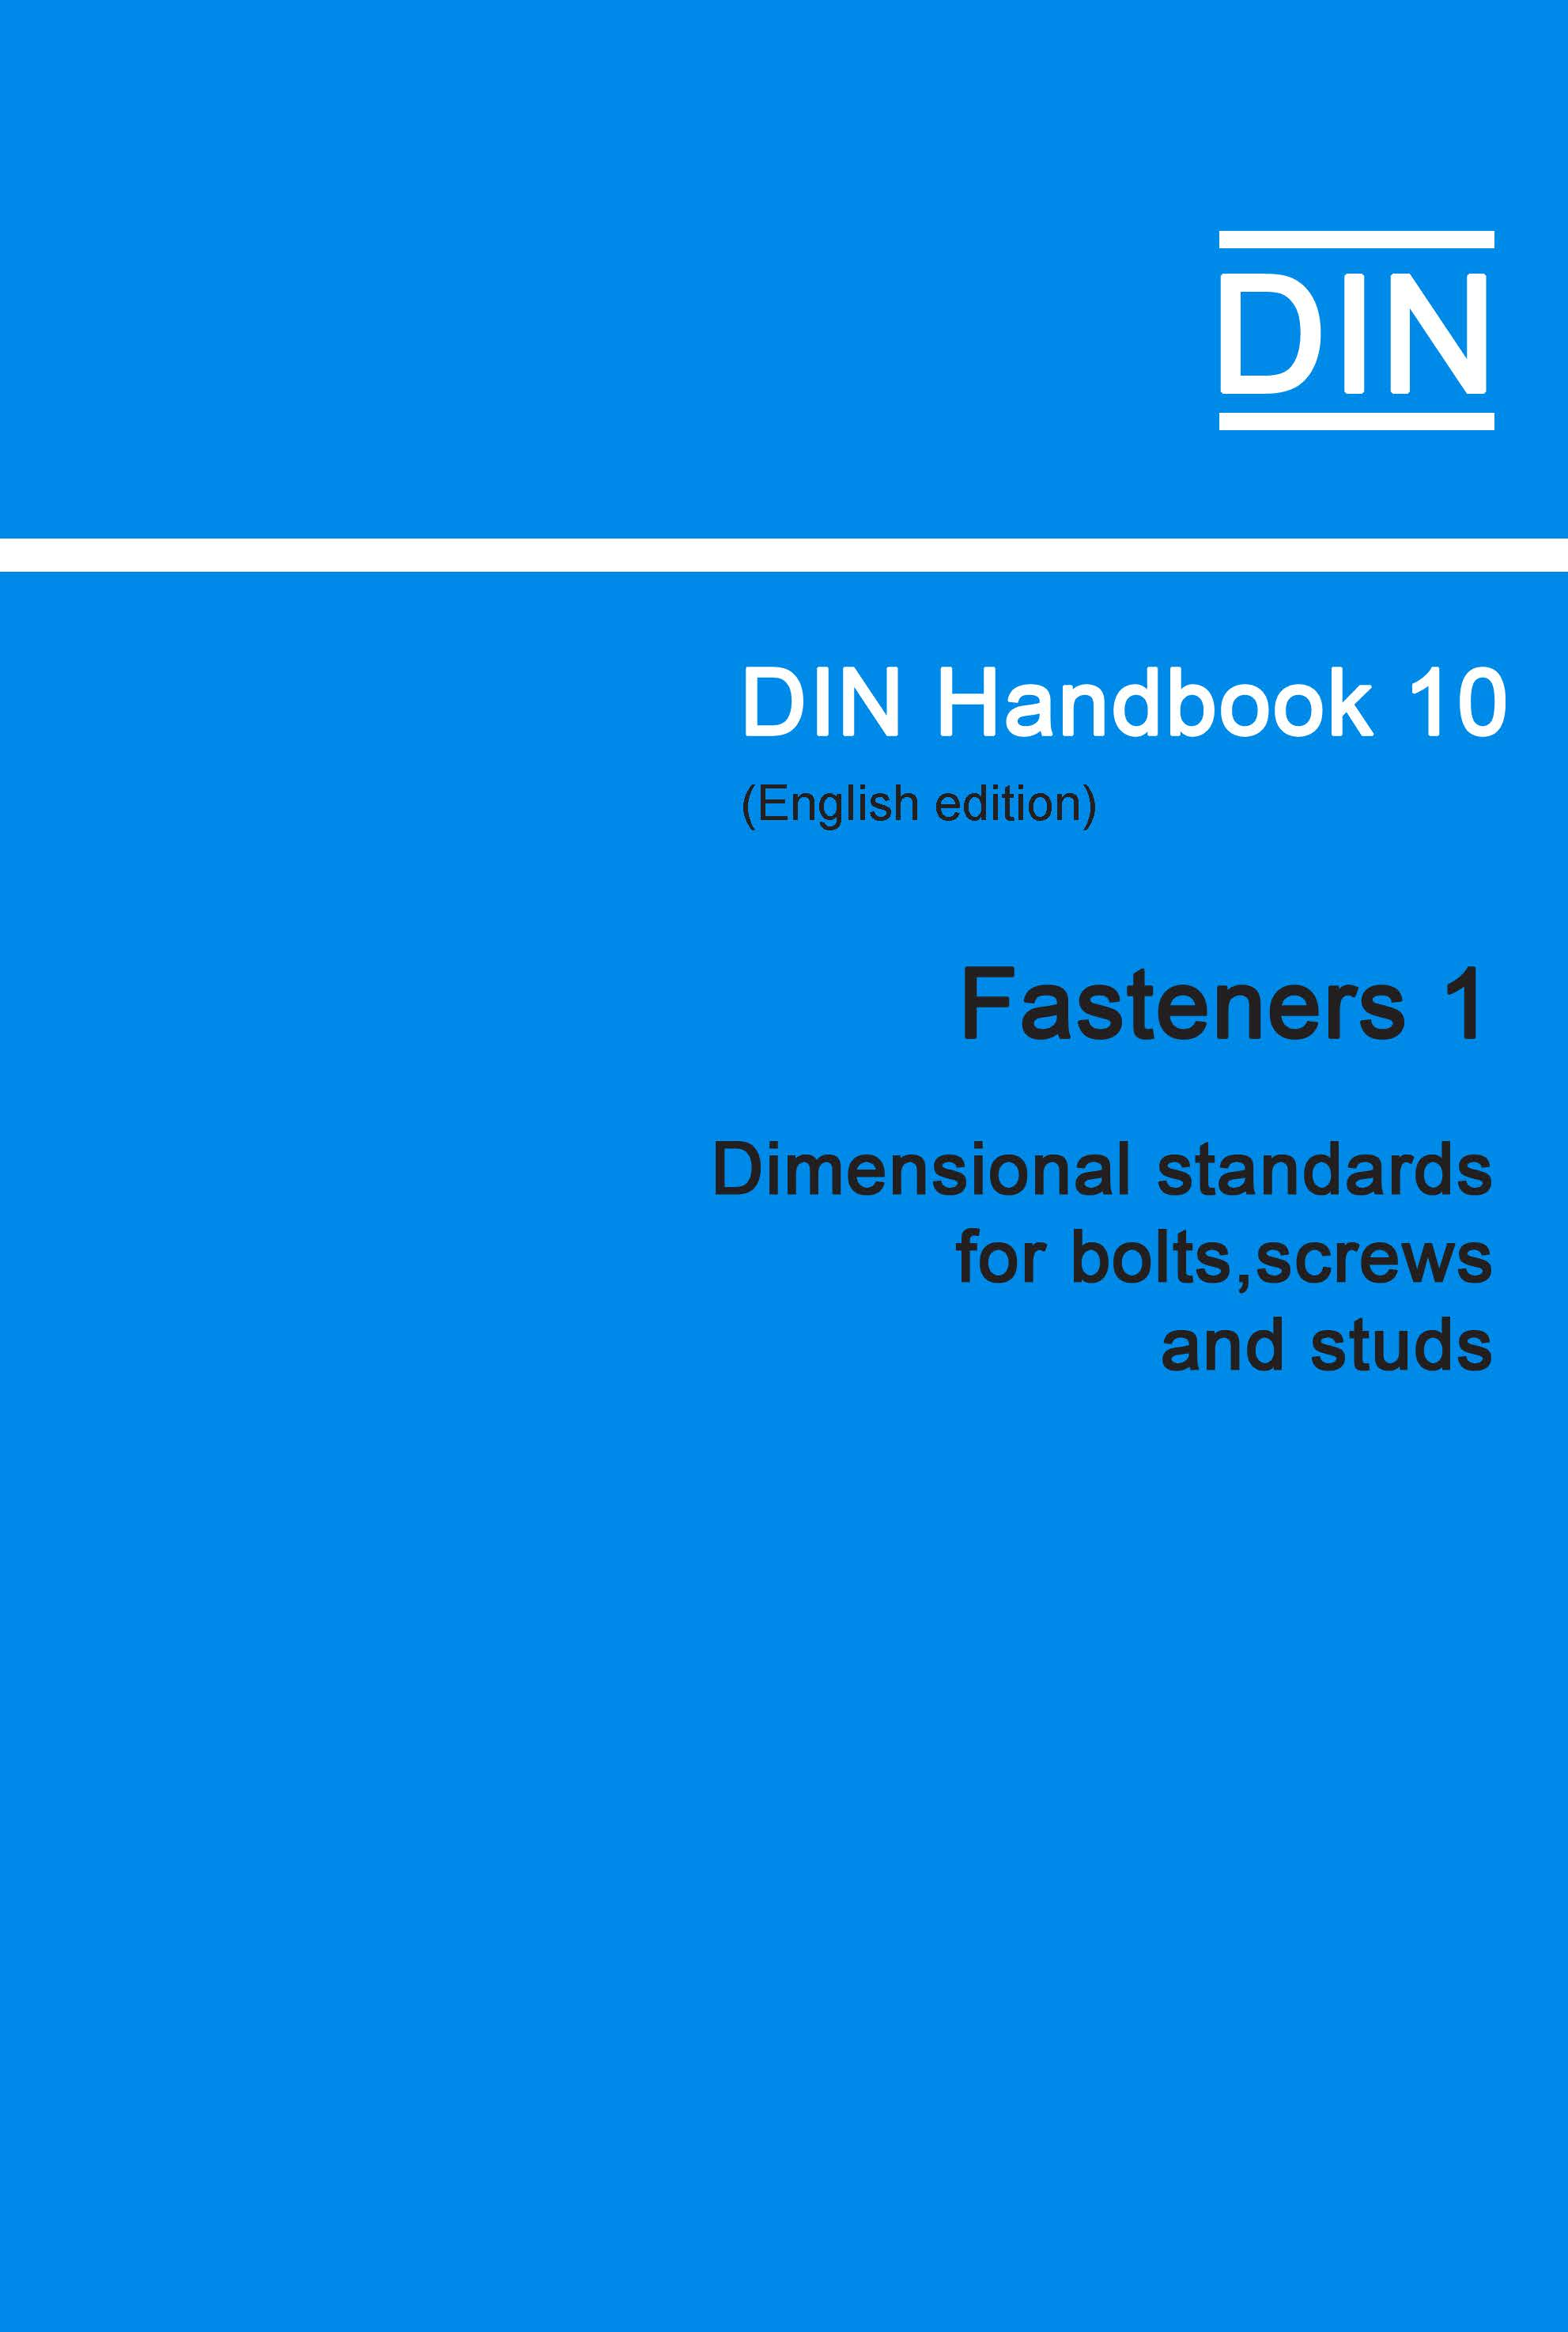 (DIN Handbook  10 Fasteners 1 (Dimensional Standards For Bolts,screws And Studs